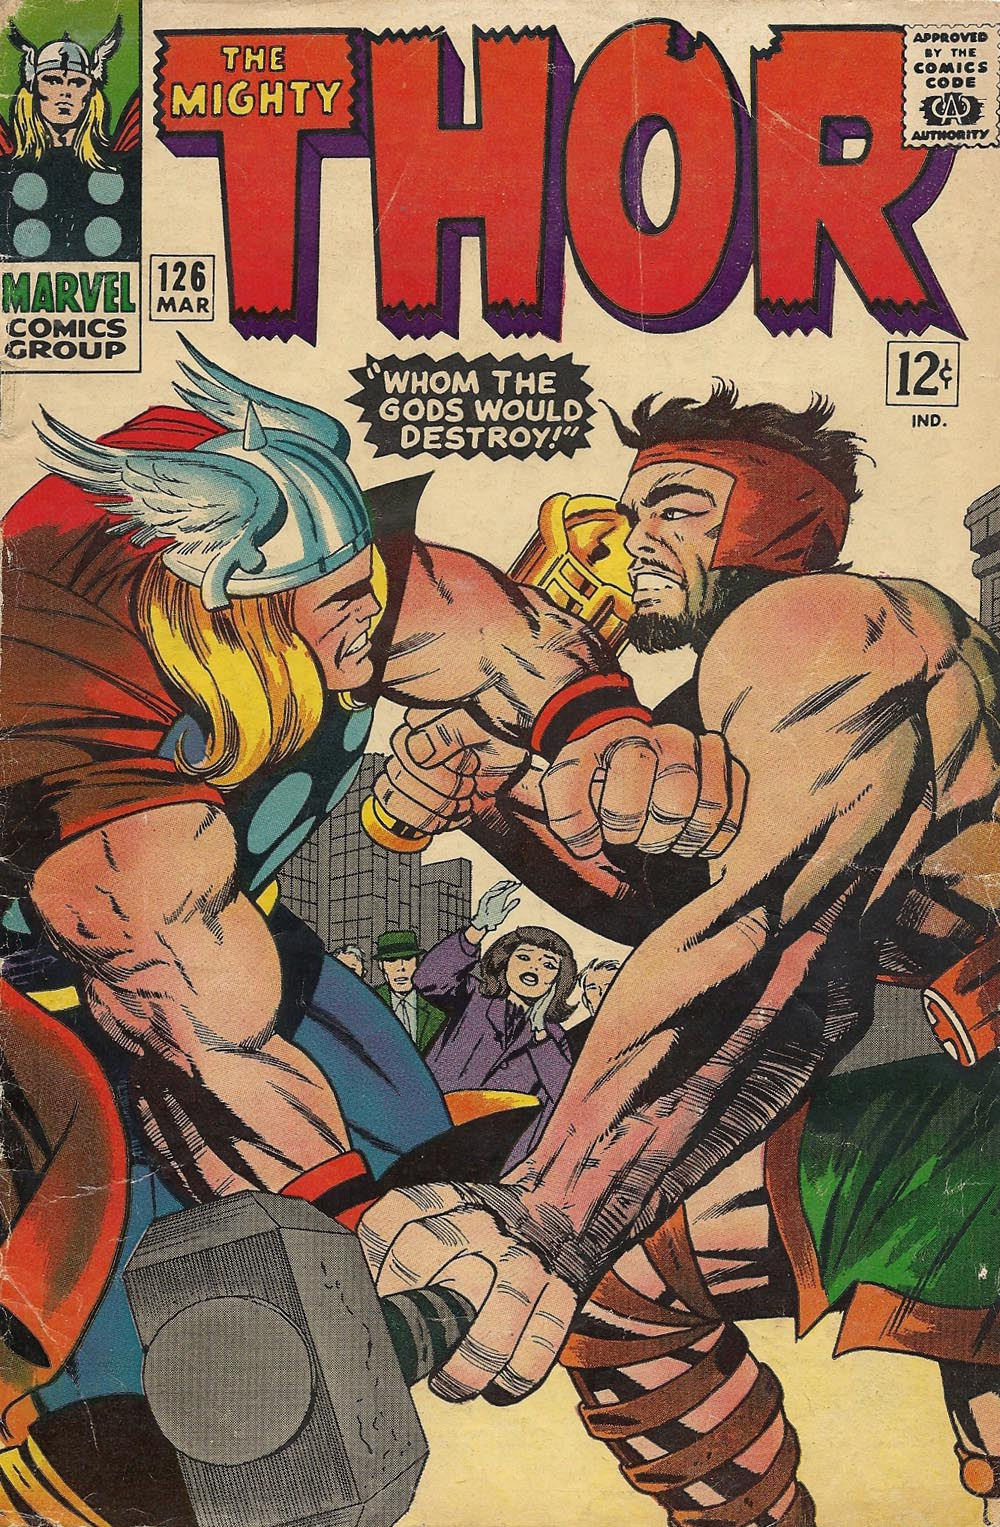 Cover to Thor 126, Marvel Comics, 1966, pencils by Jack Kirby, inks by Vincent Colletta